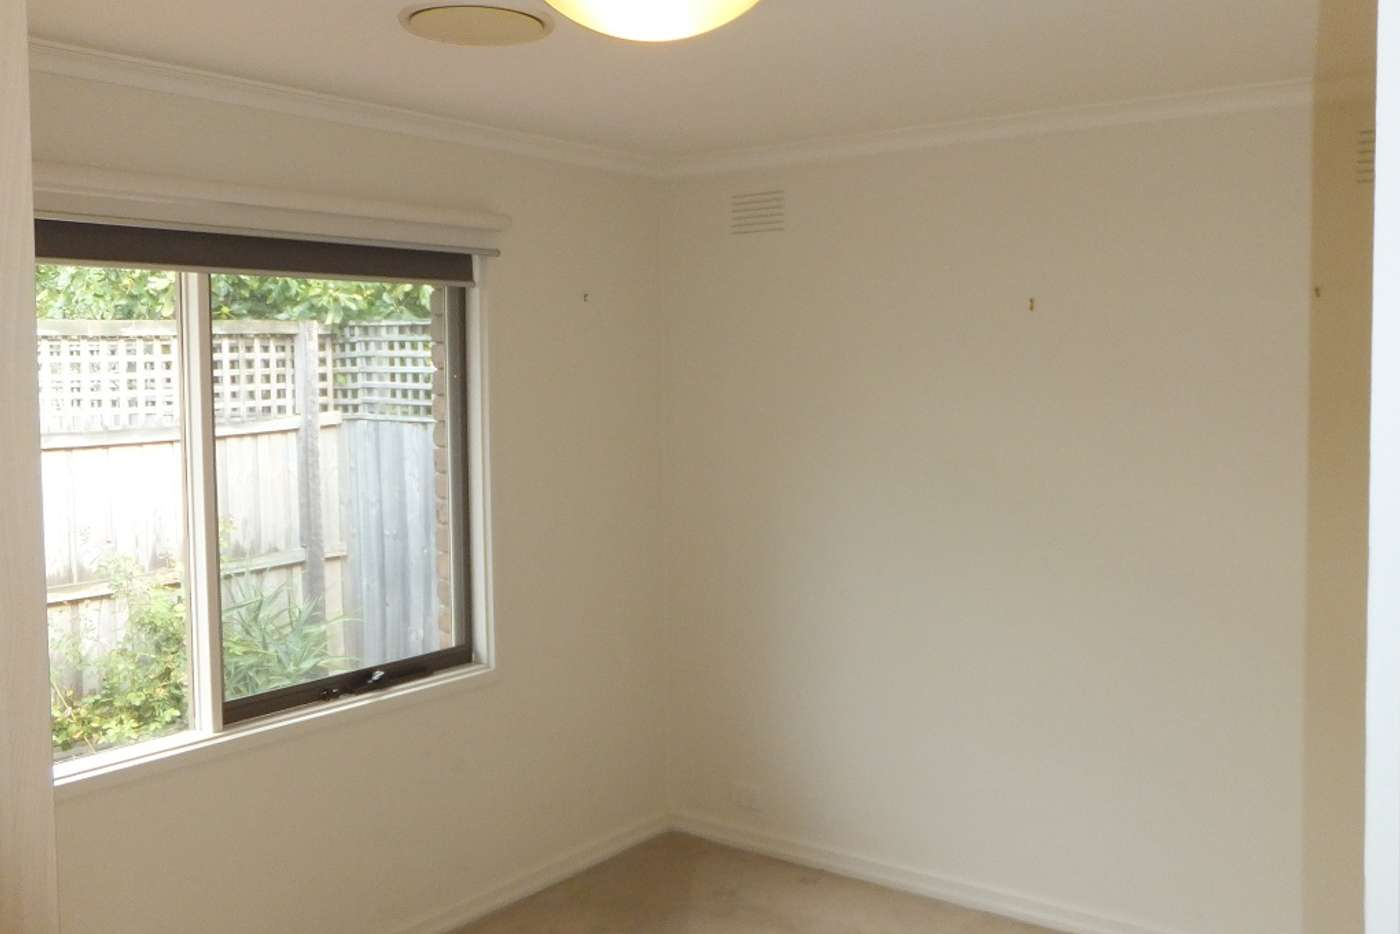 Sixth view of Homely unit listing, 4/59 Clarence Street, Elsternwick VIC 3185